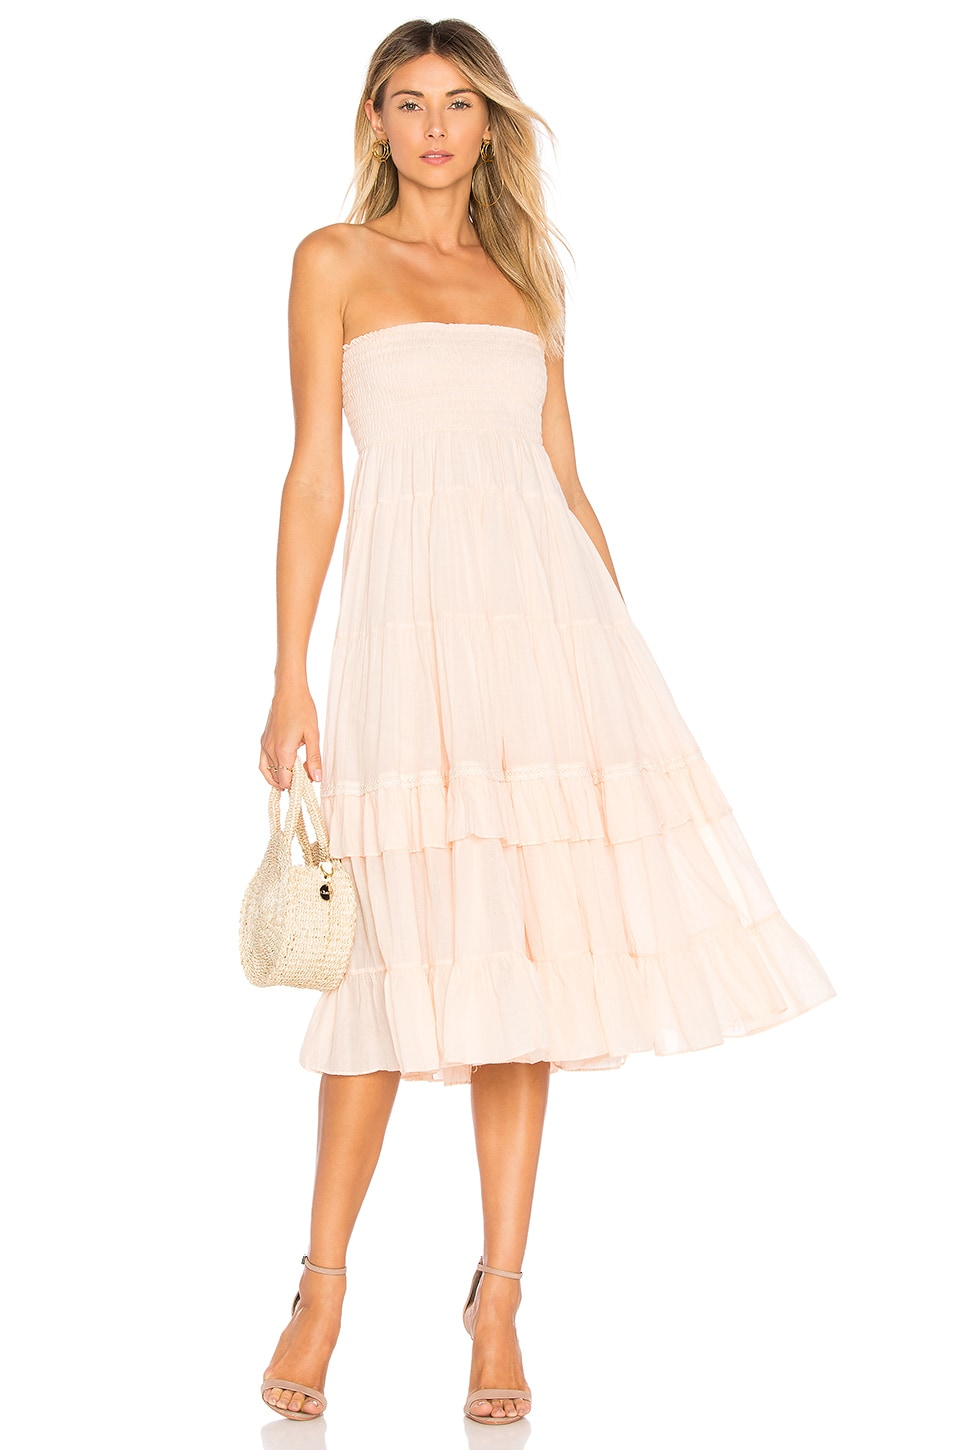 AMANDA BOND Sophie Convertible Dress in Peach